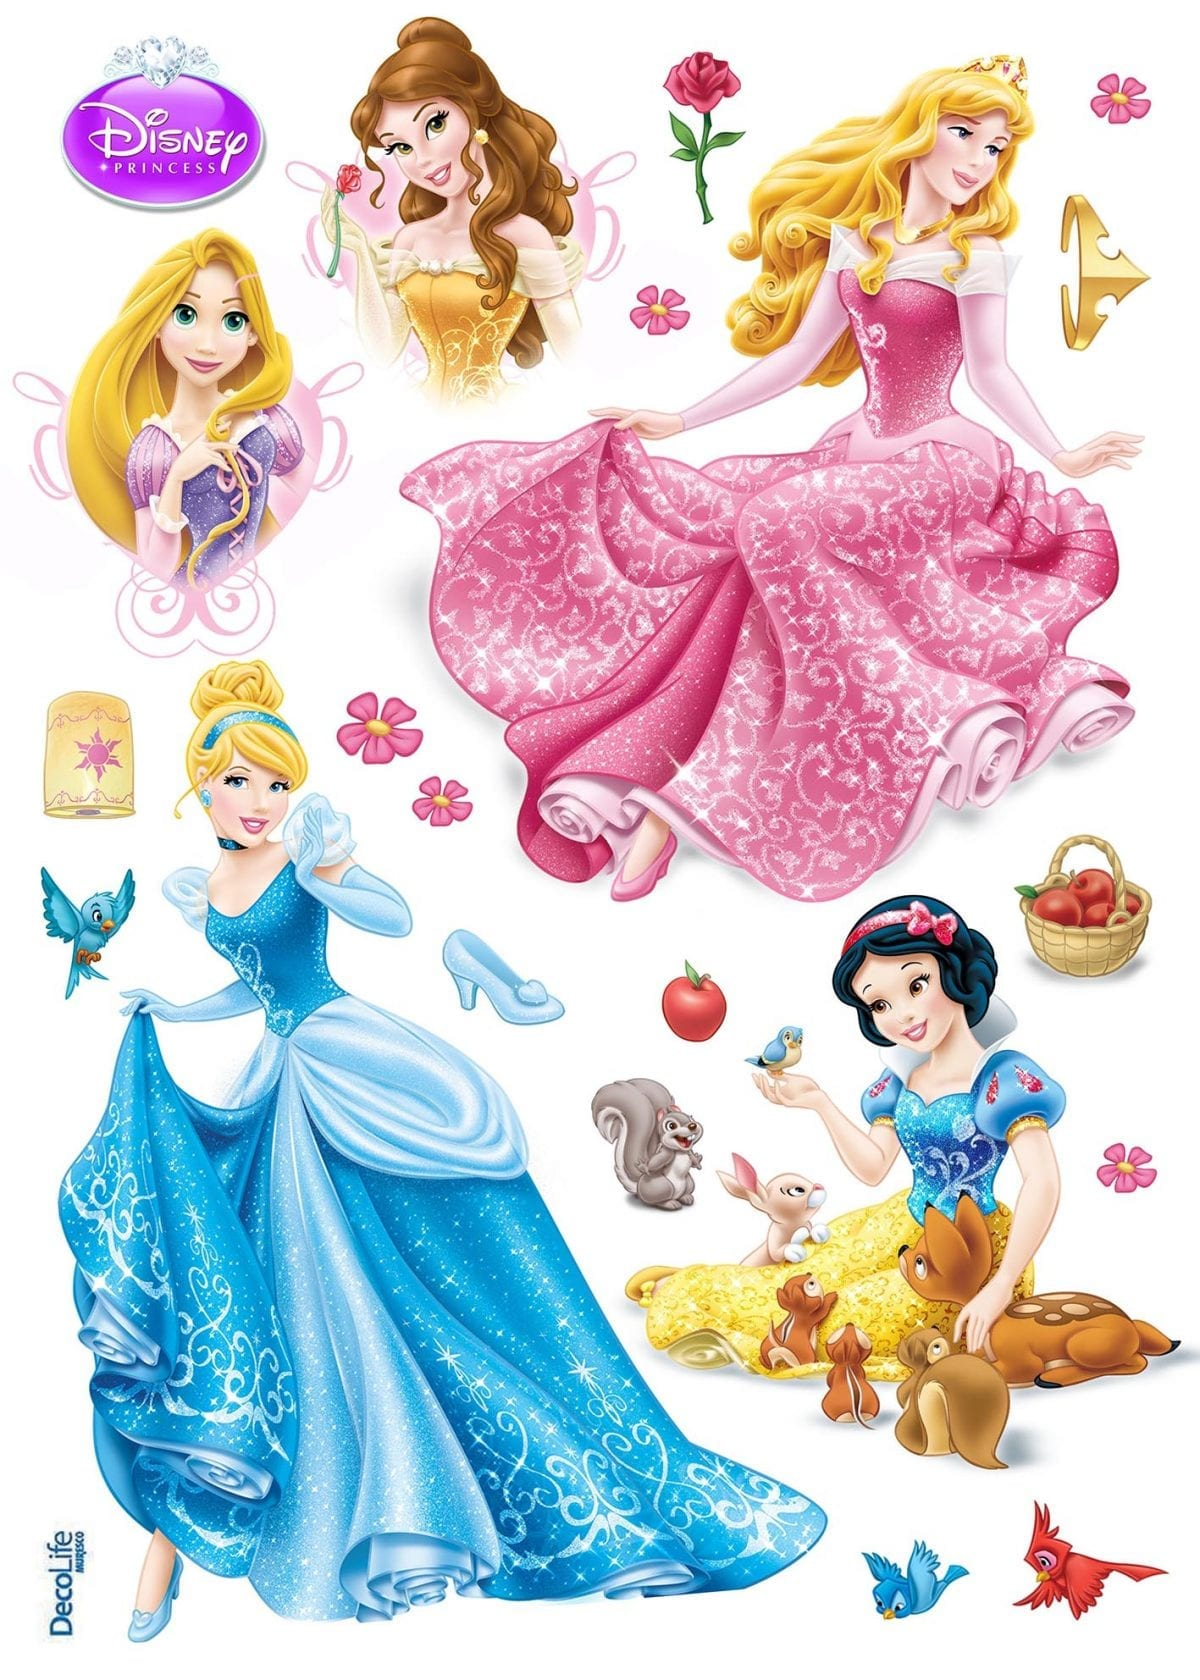 Wallsticker Princesas DISNEY 1596-1 Decolife Muresco